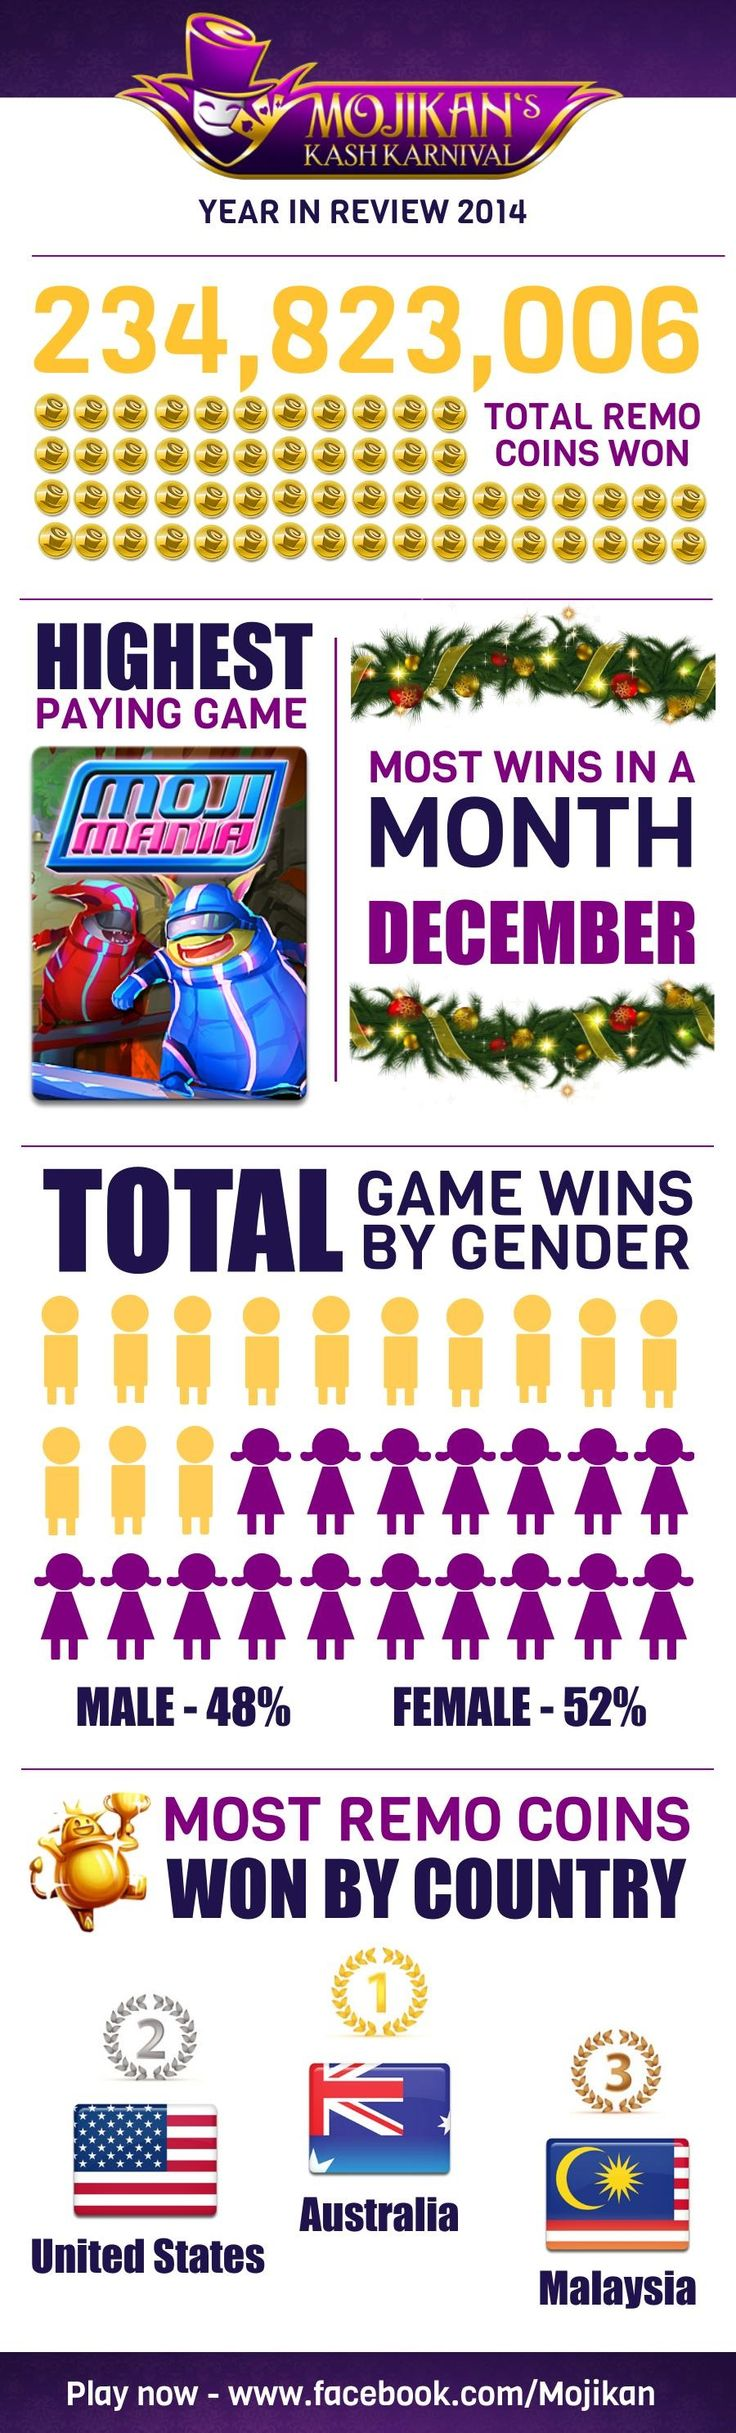 Did You Know...We gave away 234,823,006 Remo Coins last year!  Check out more cool facts in our 2014 year in review! #infographic #socialgame #data